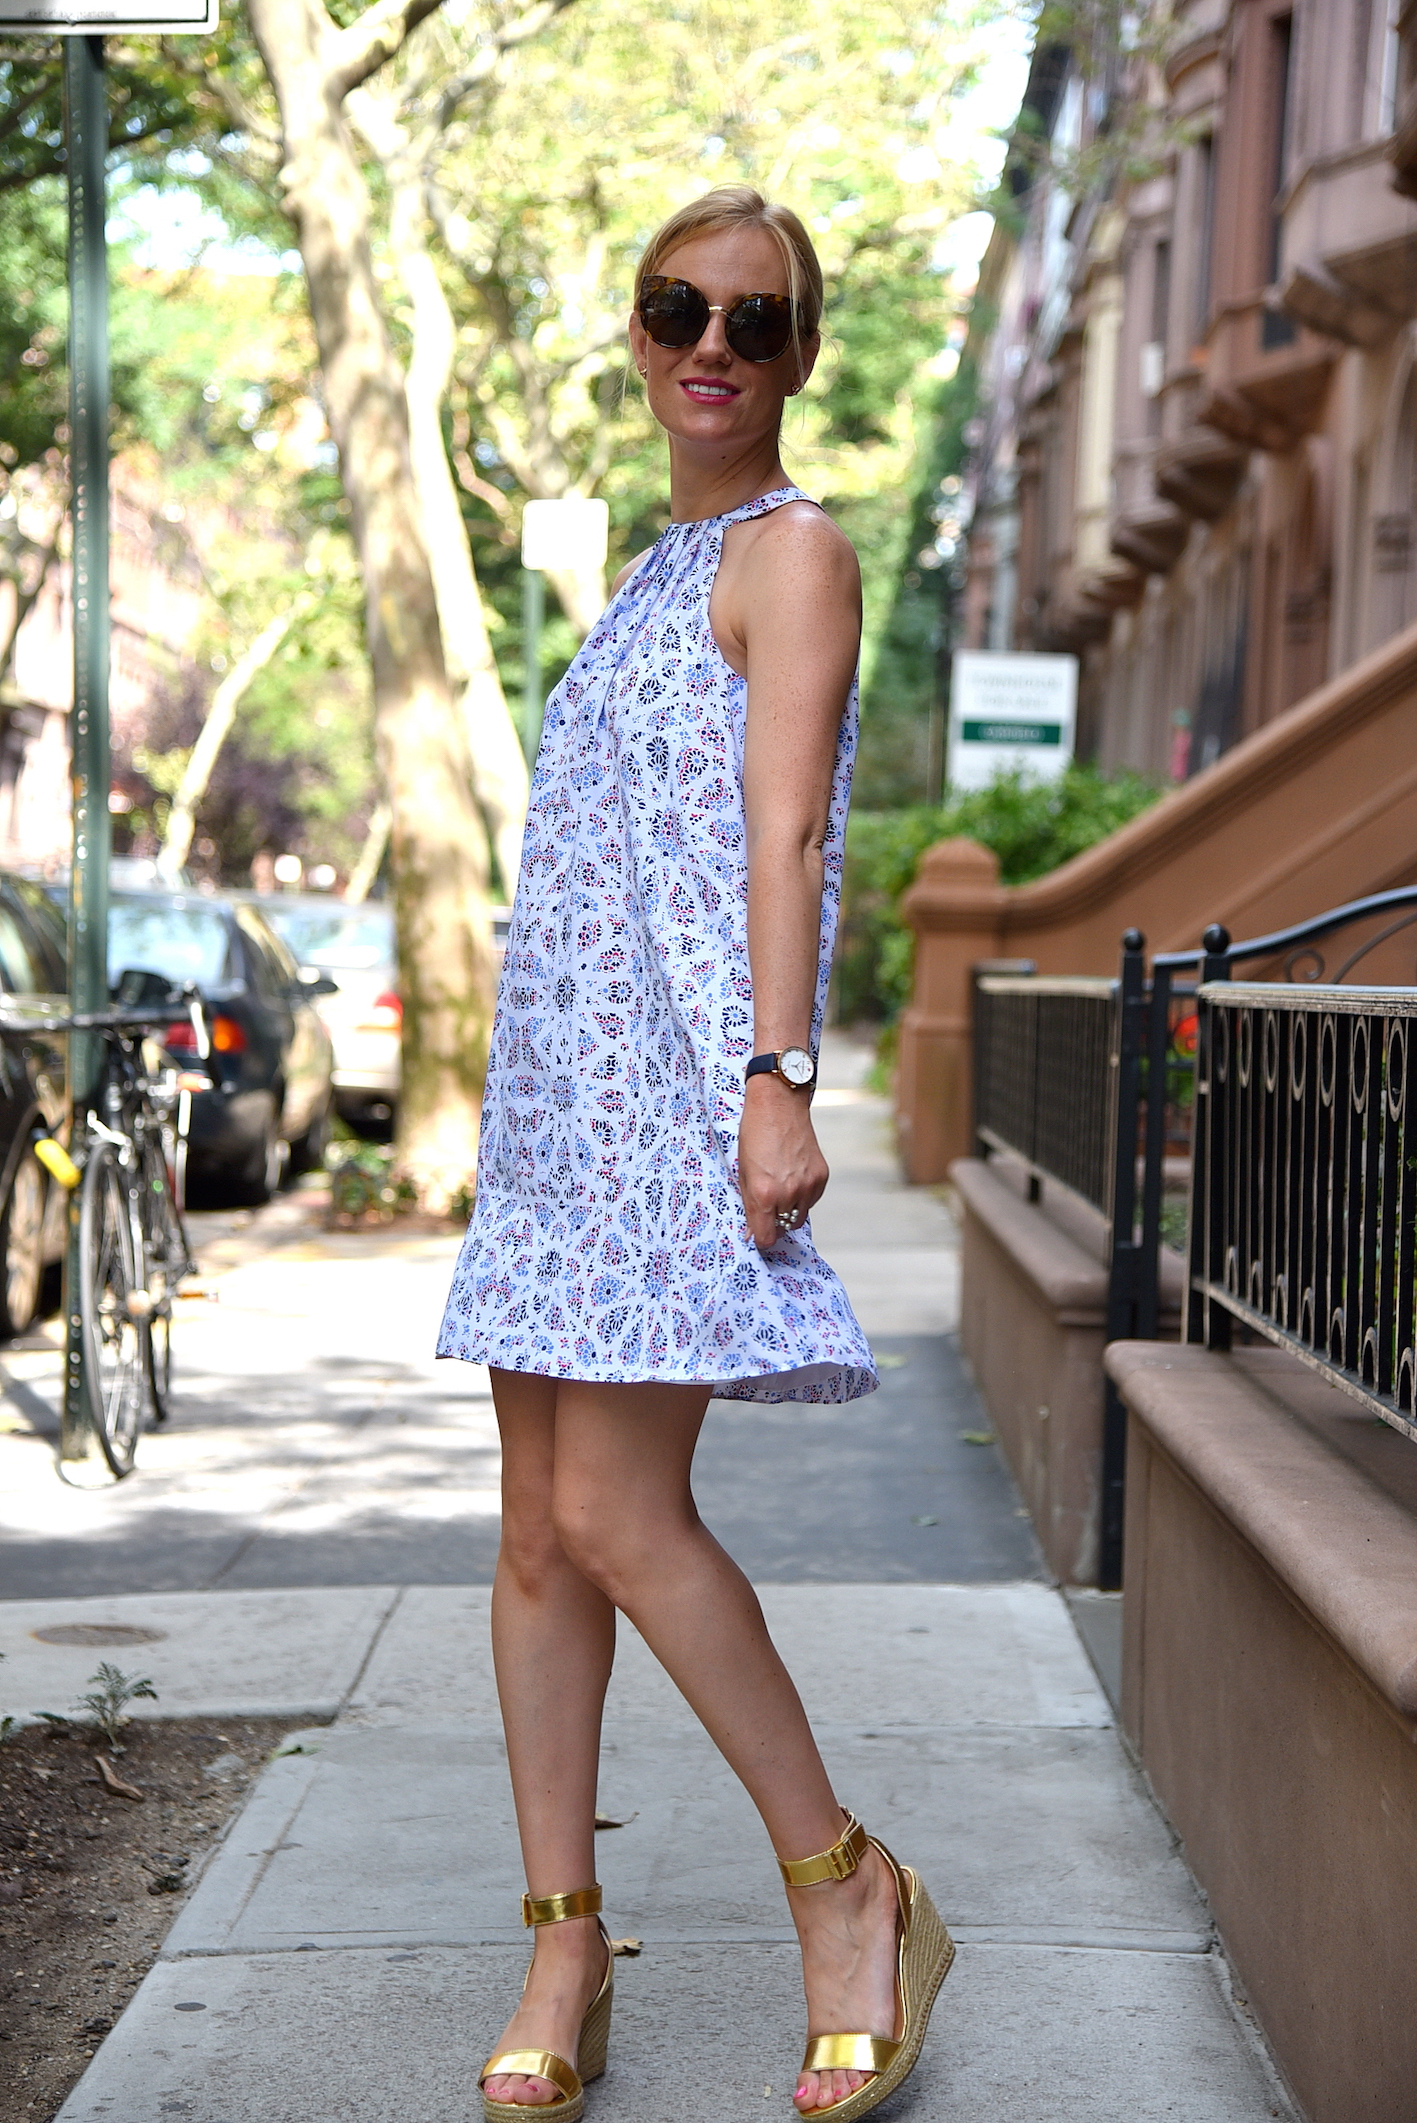 Lord and Taylor Cece Dress NYC Fashion Blogger outfit mybigapplecity